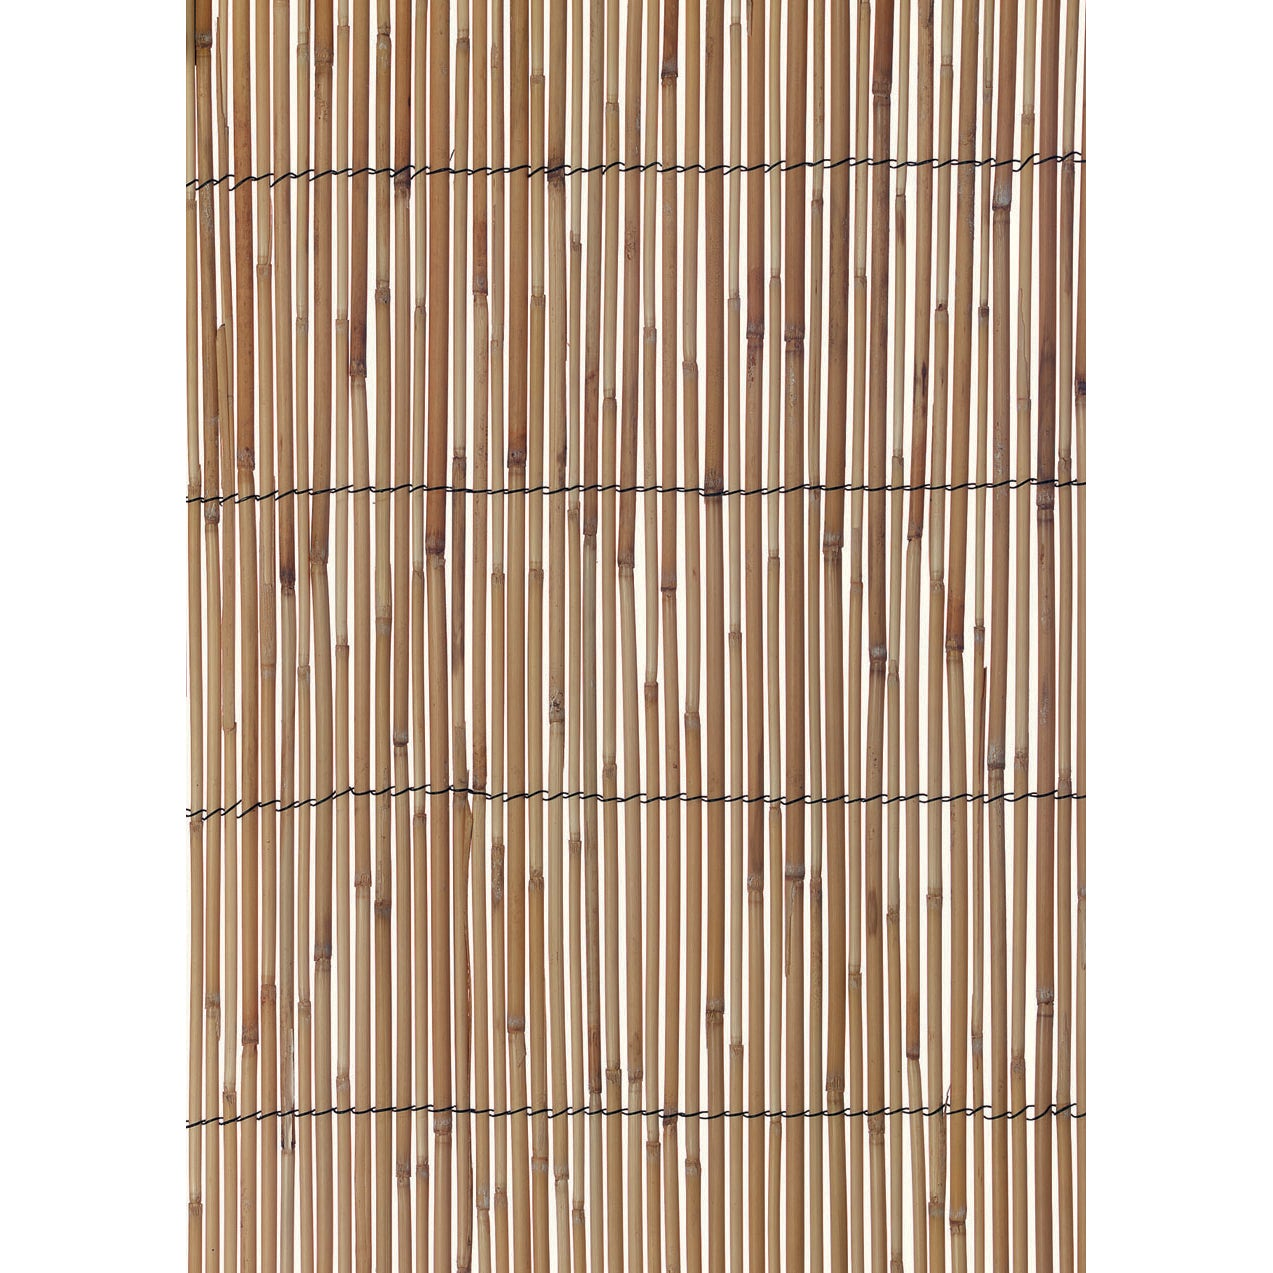 USA High Natural Reed Fencing, Silver steel